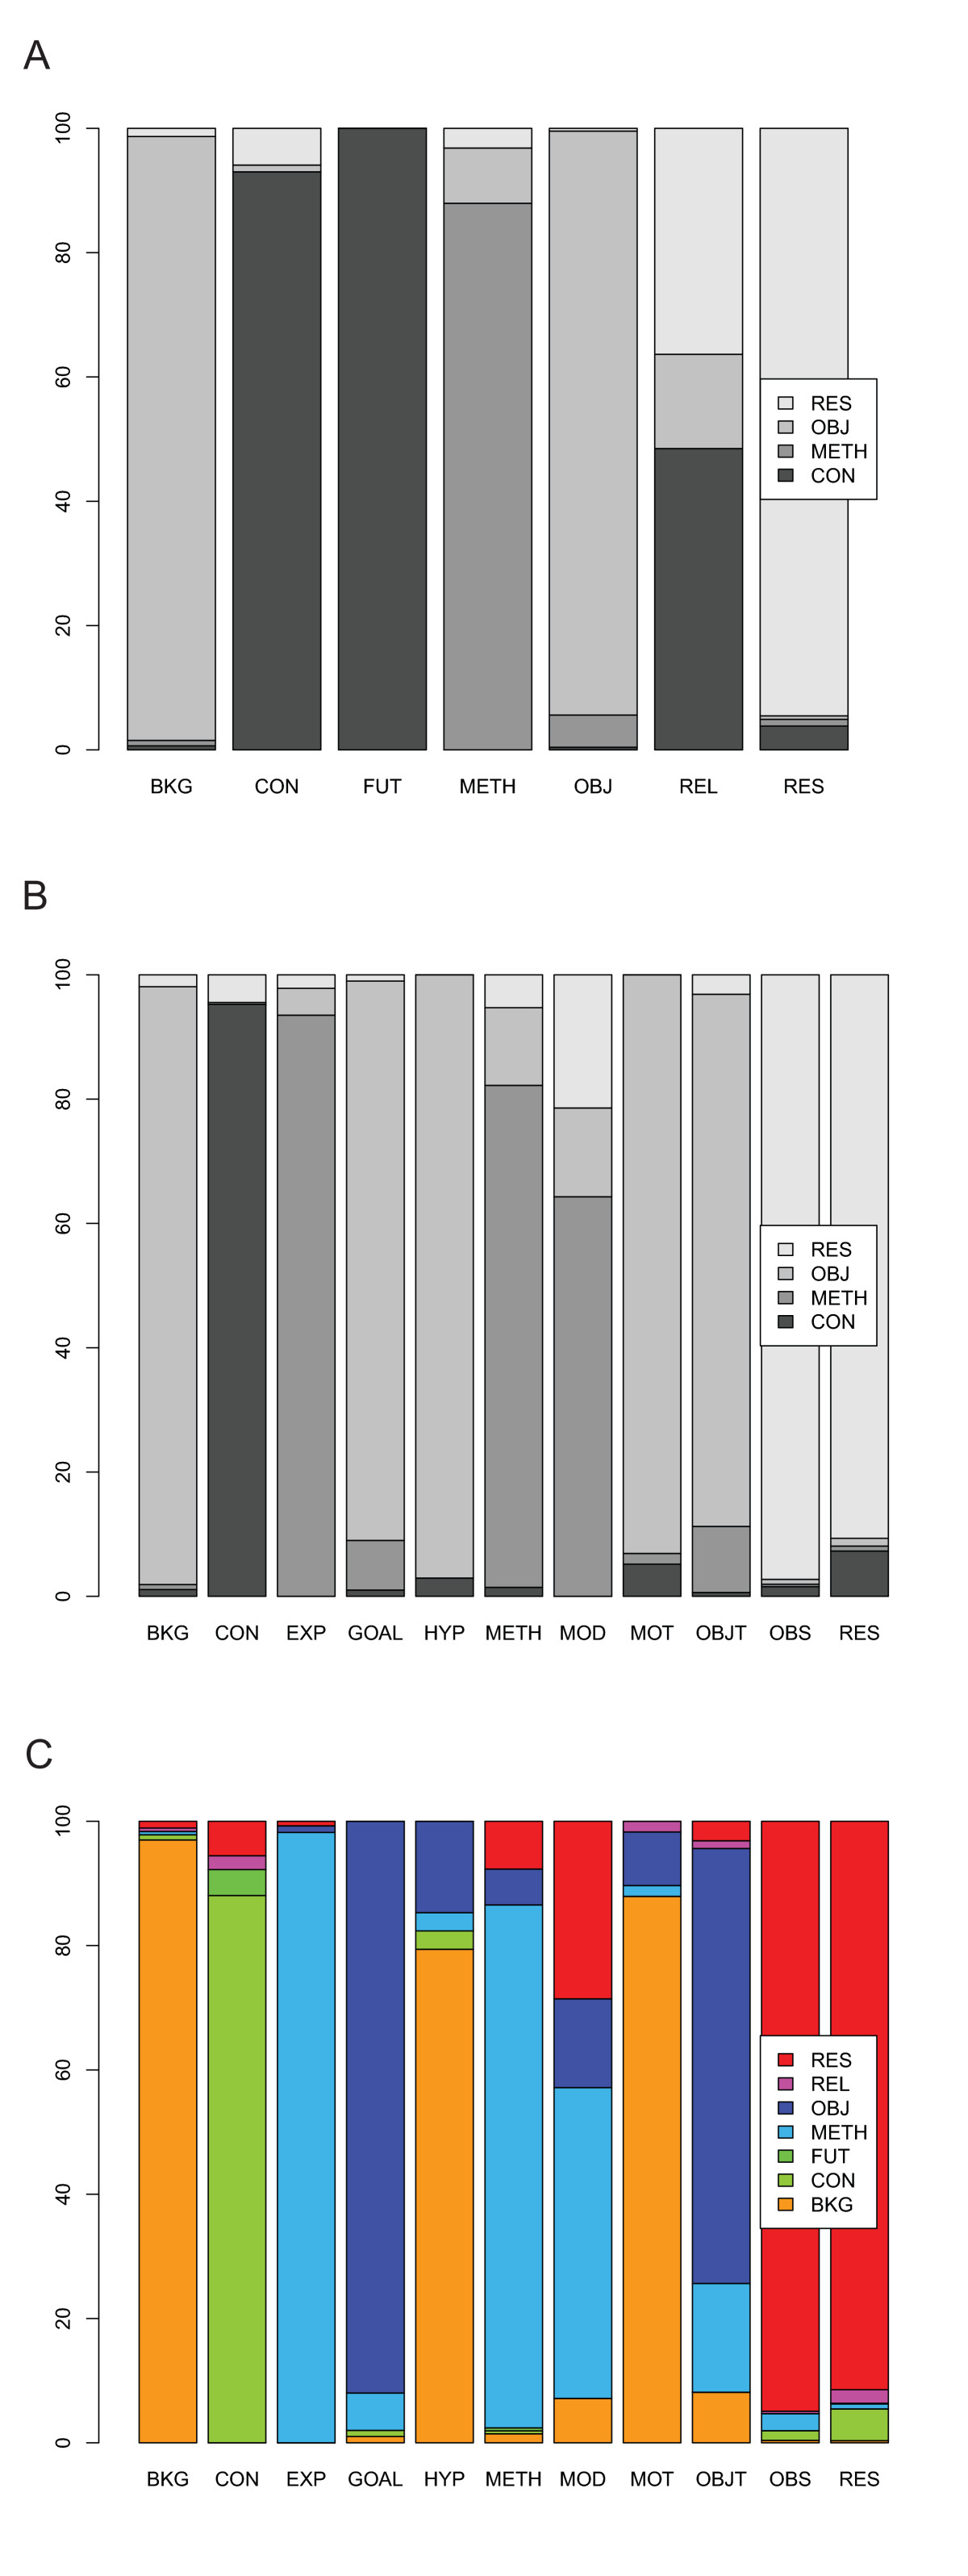 https://static-content.springer.com/image/art%3A10.1186%2F1471-2105-12-69/MediaObjects/12859_2010_Article_4443_Fig3_HTML.jpg